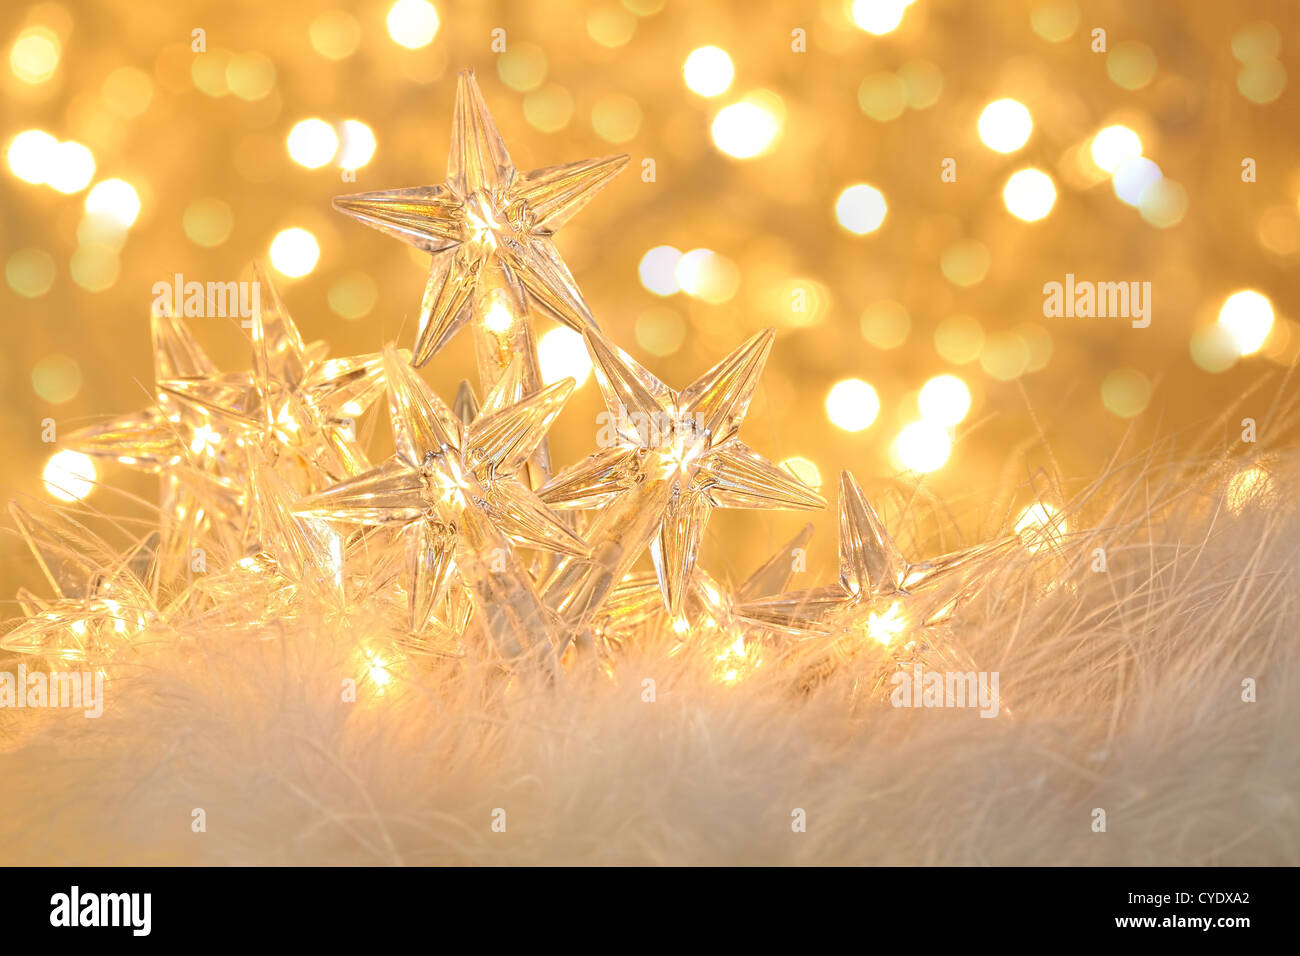 Star holiday lights with gold sparkle background - Stock Image